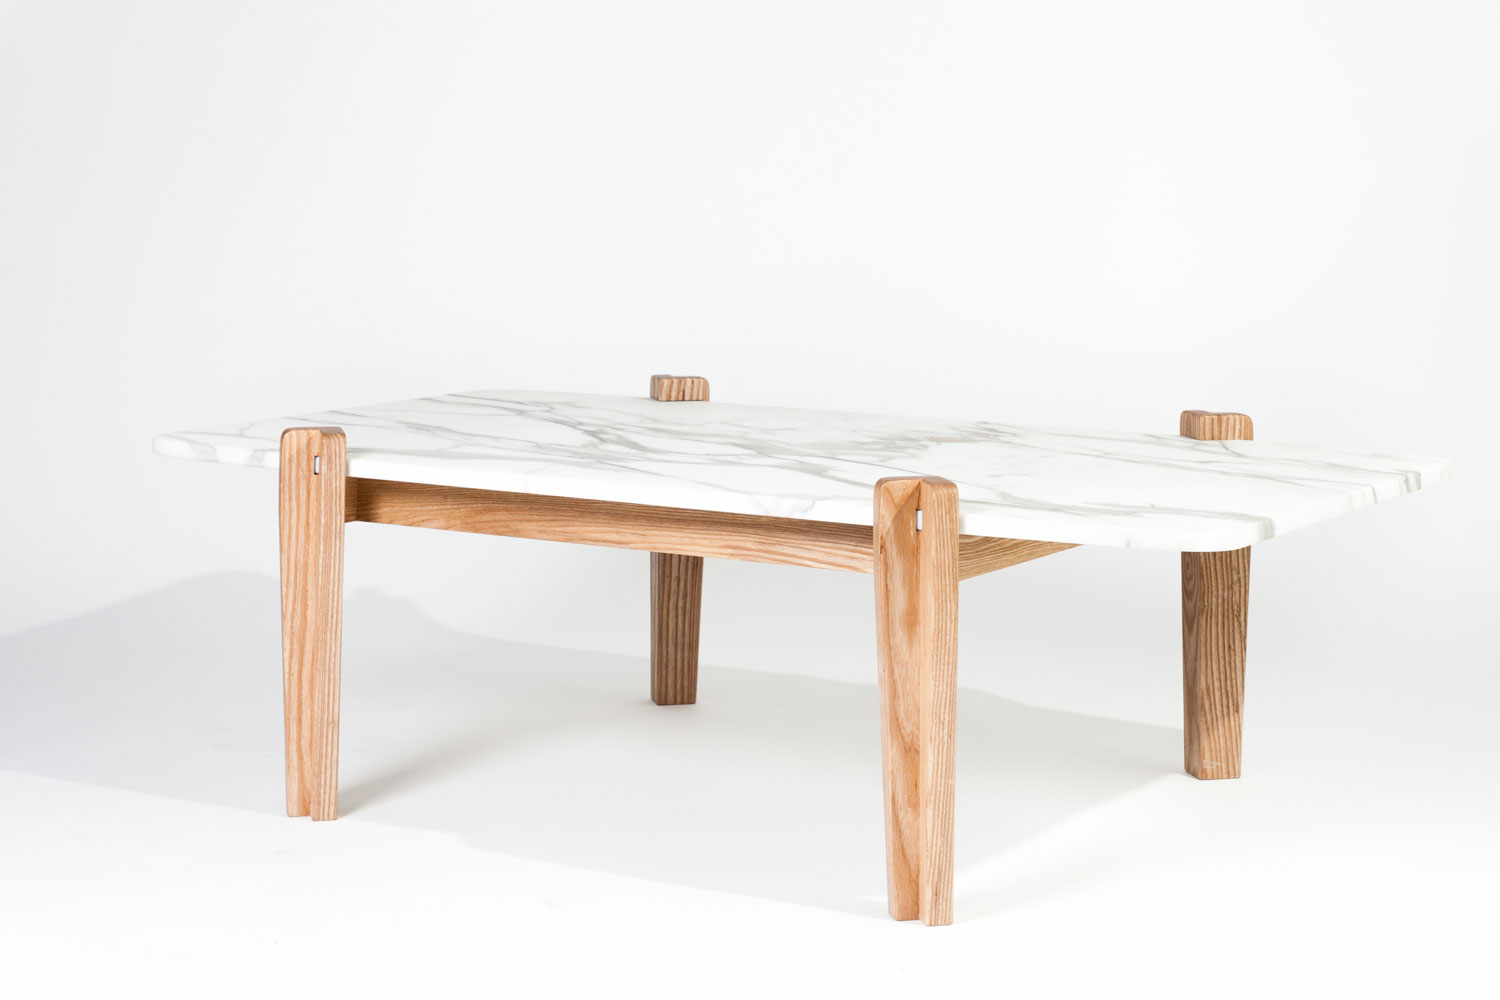 Frankie Table, Marbre&bois Range by rtist AGENCY | Yellowtrace